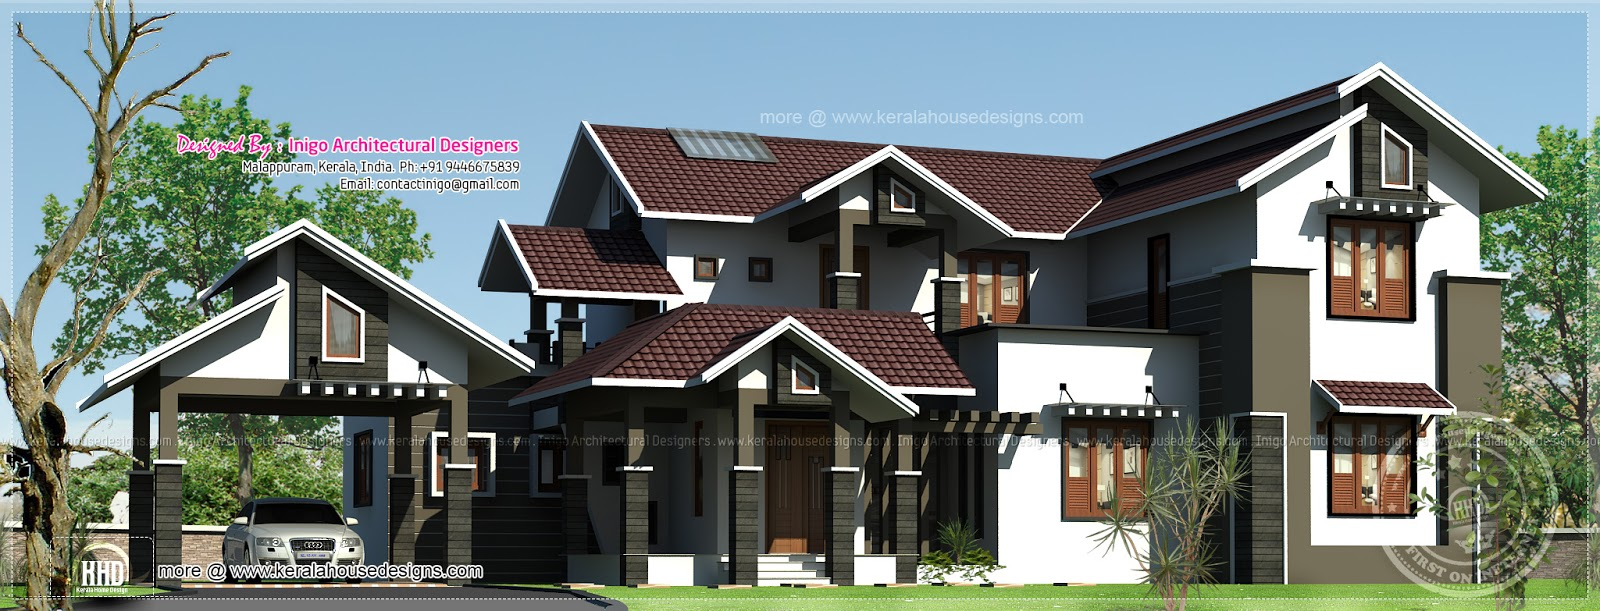 House design hilly area - 2592 Sq Ft Villa